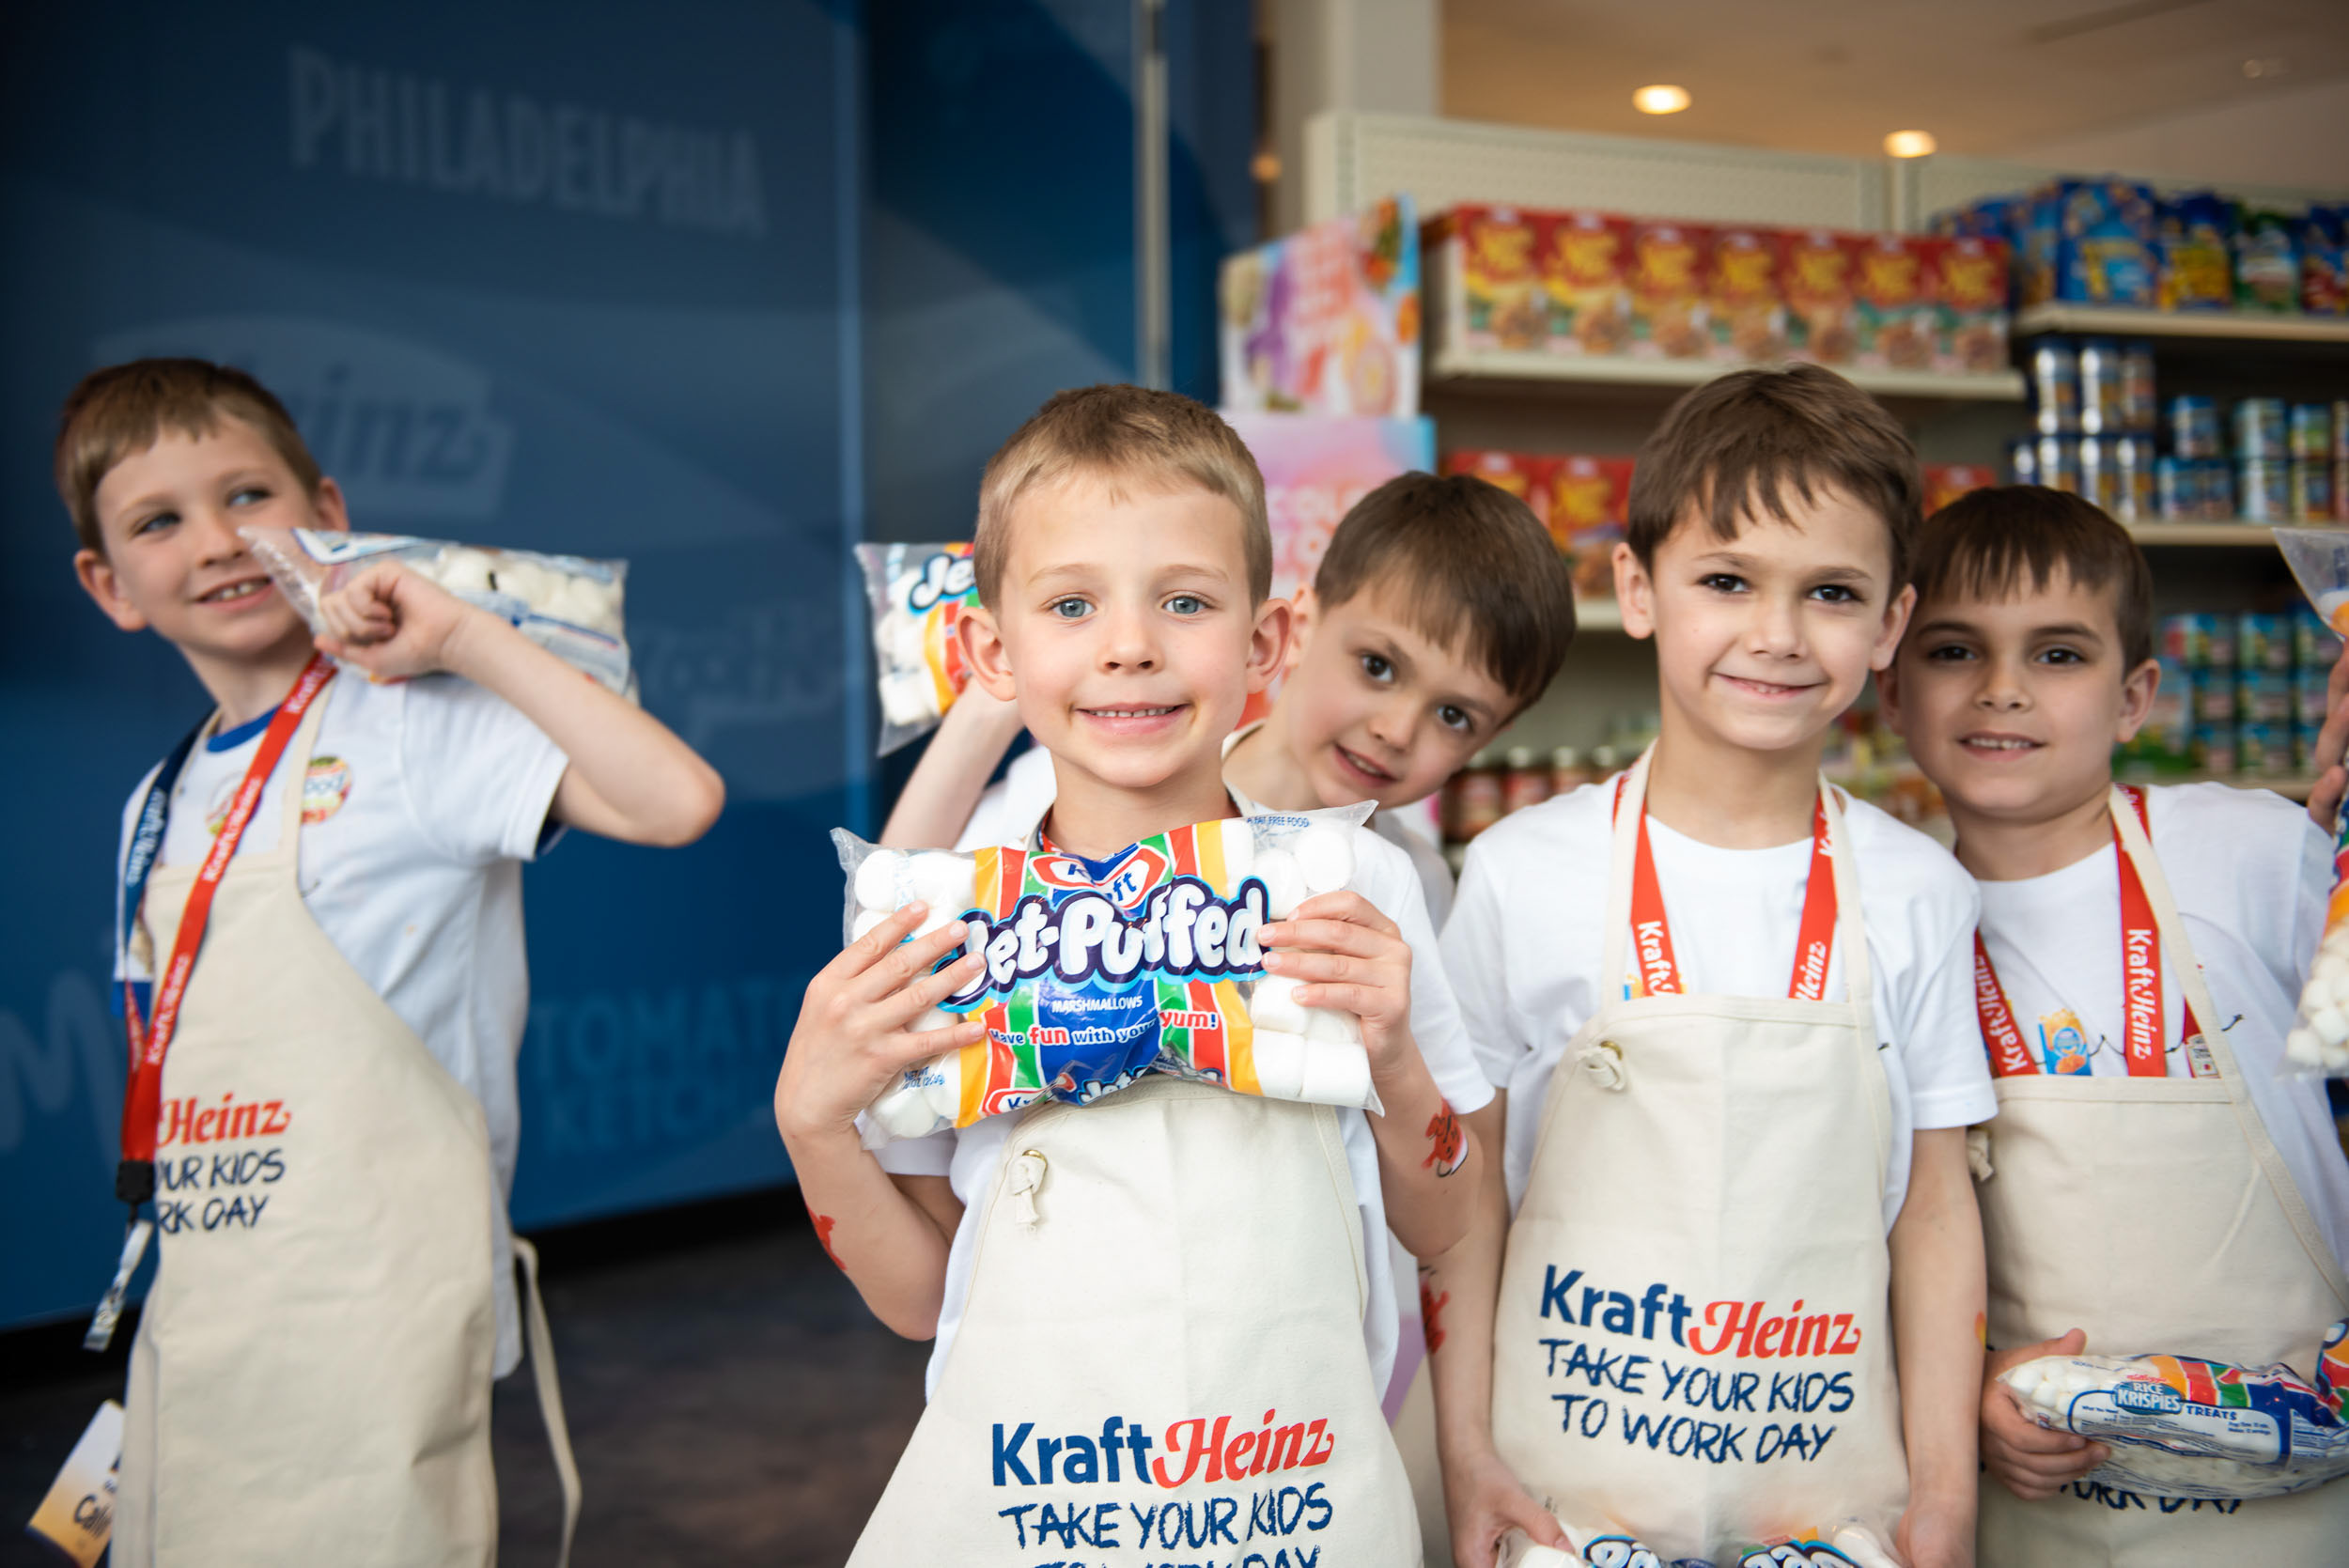 TAKE YOUR KIDS TO WORK DAY - This event brings out the kids in us, too! We followed along as the Kraft Heinz kids took a turn in the kitchen, danced it out, and even met Mr. Peanut and the Kool Aid Man.